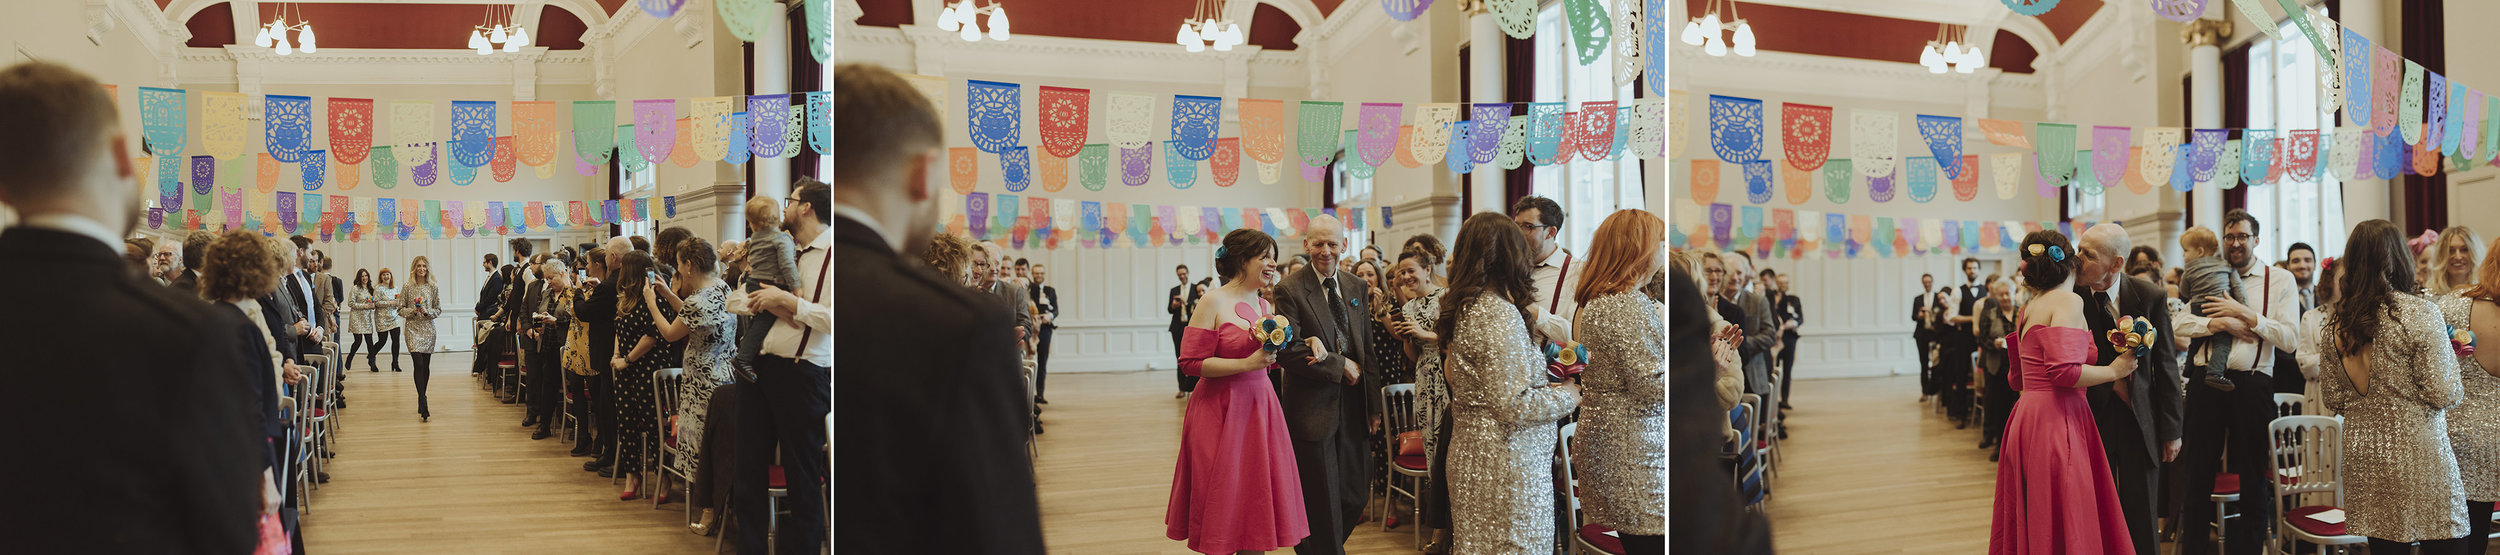 Summerhall and The Biscuit Factory Wedding 25.jpg